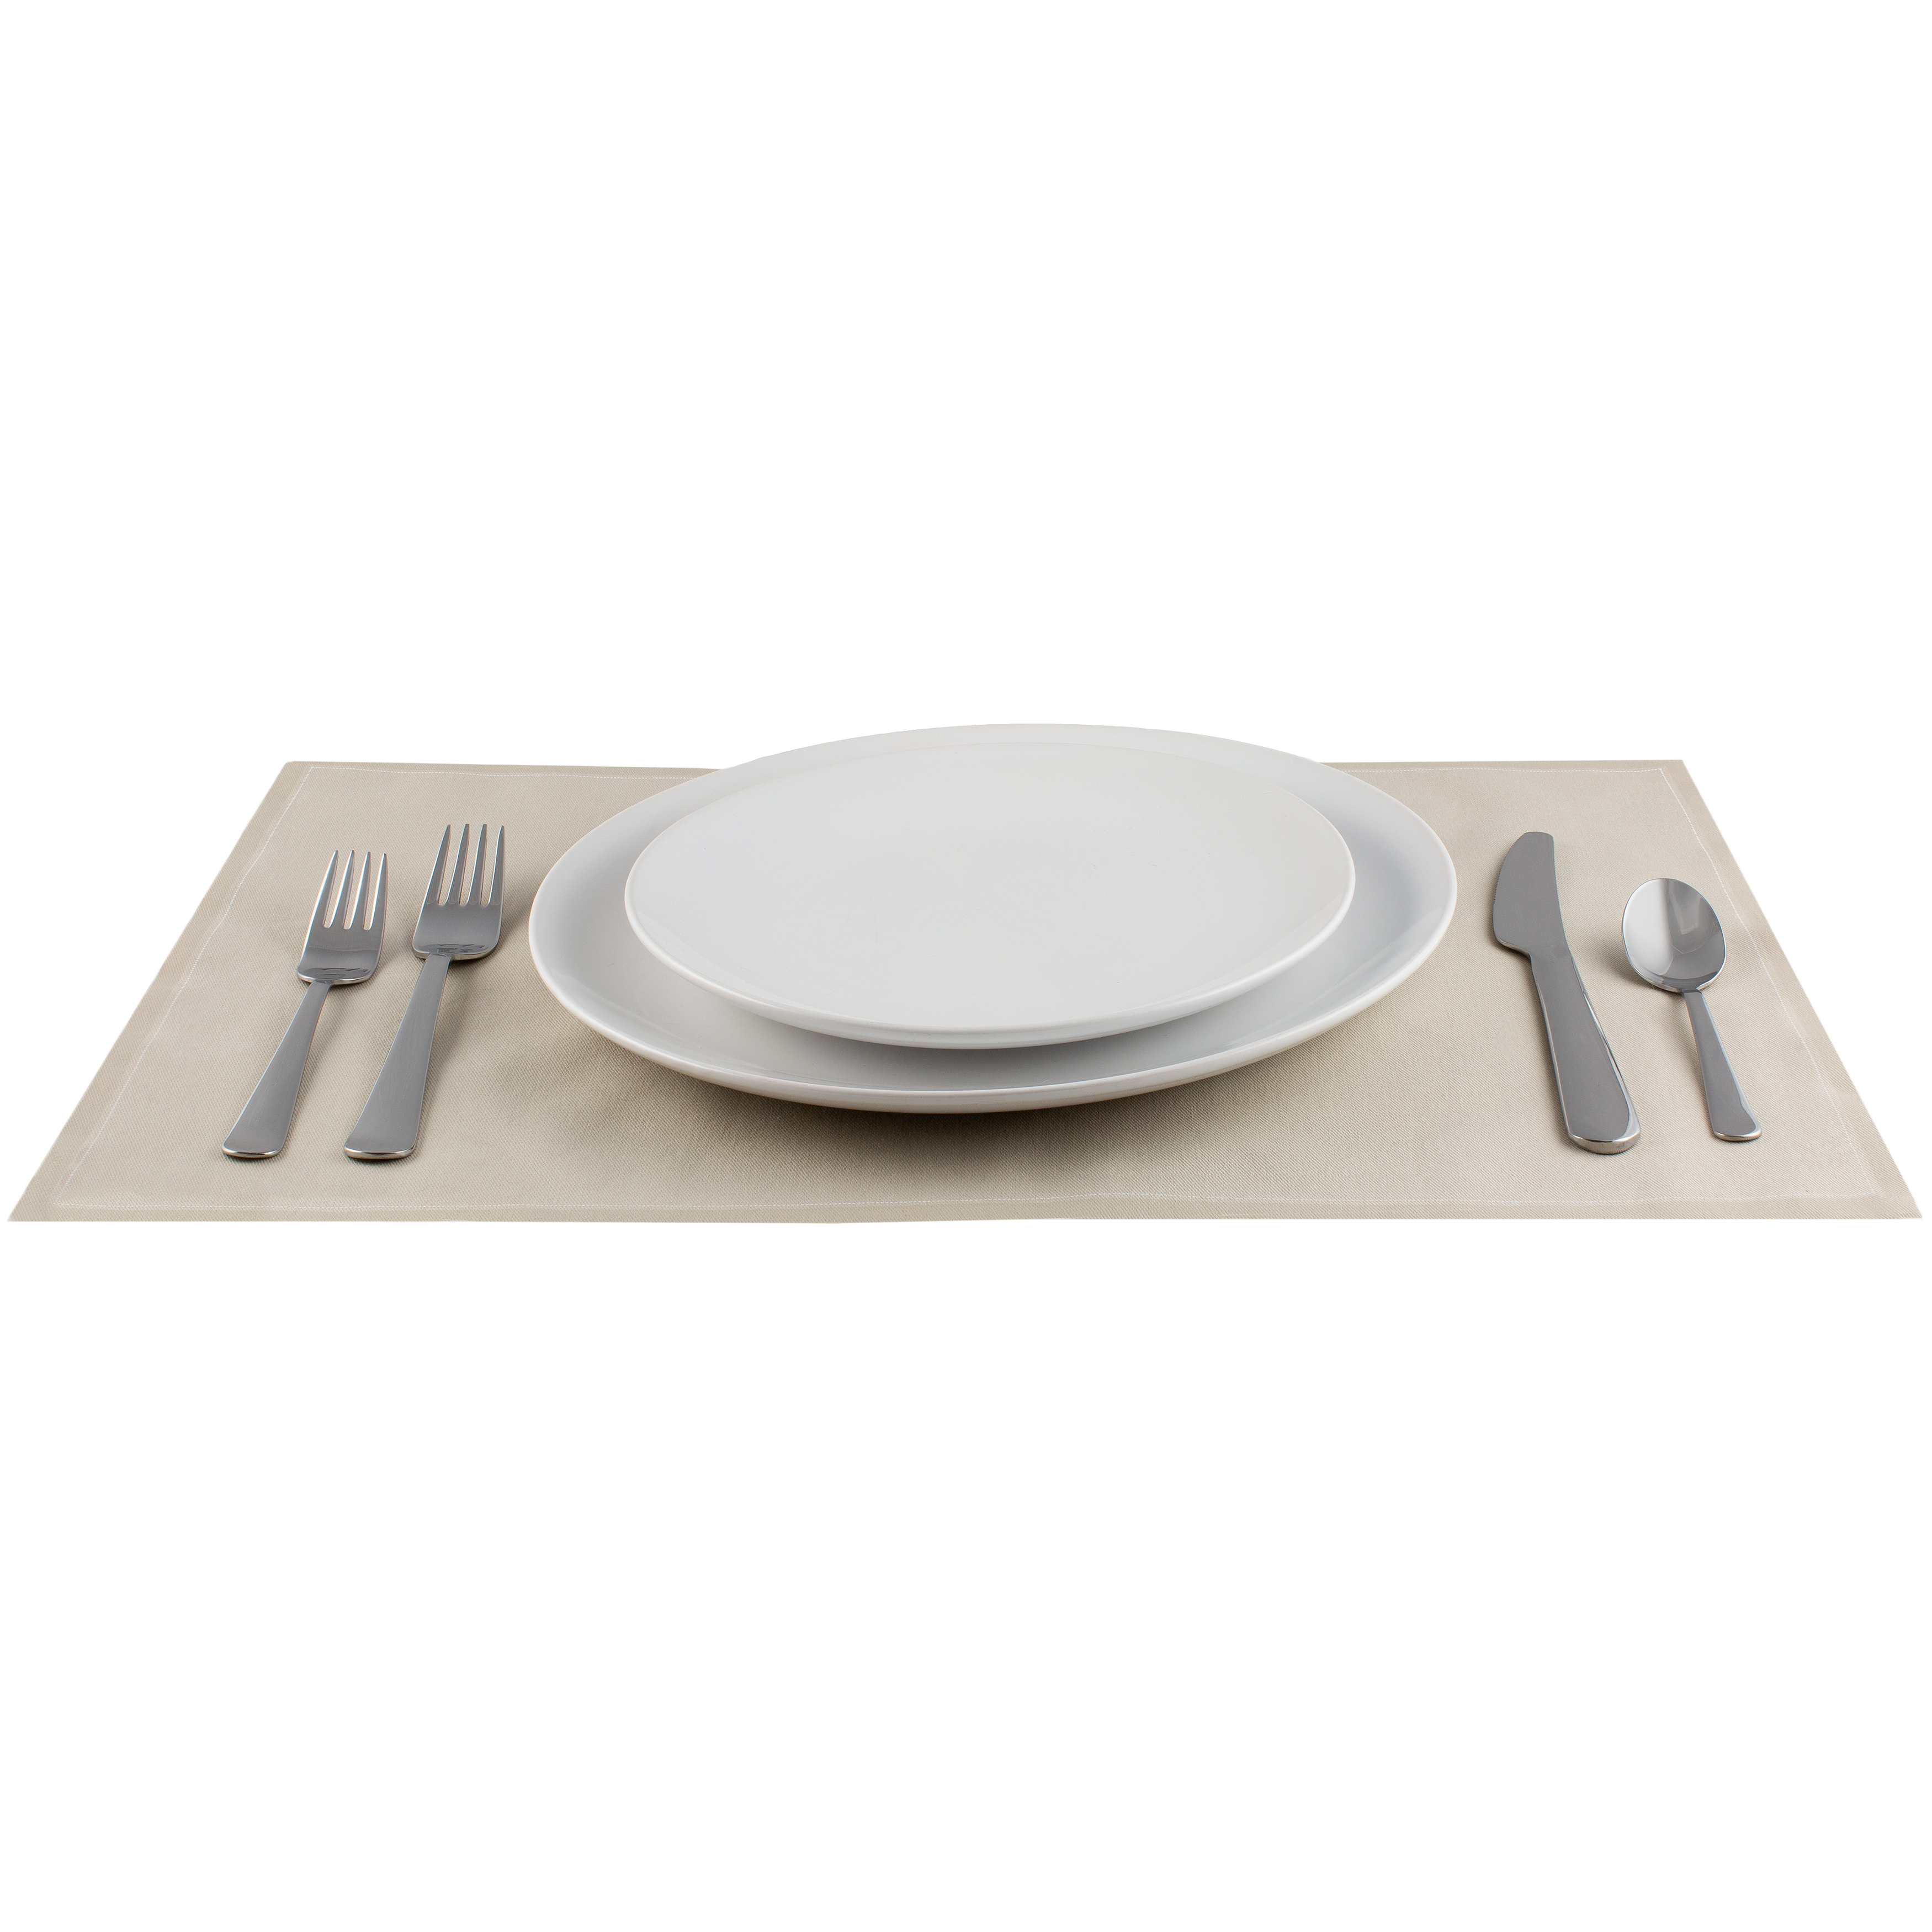 "Sand Cotton Placemat (200 GSM) - 18.9"" x 12.6"" - 250 Units"